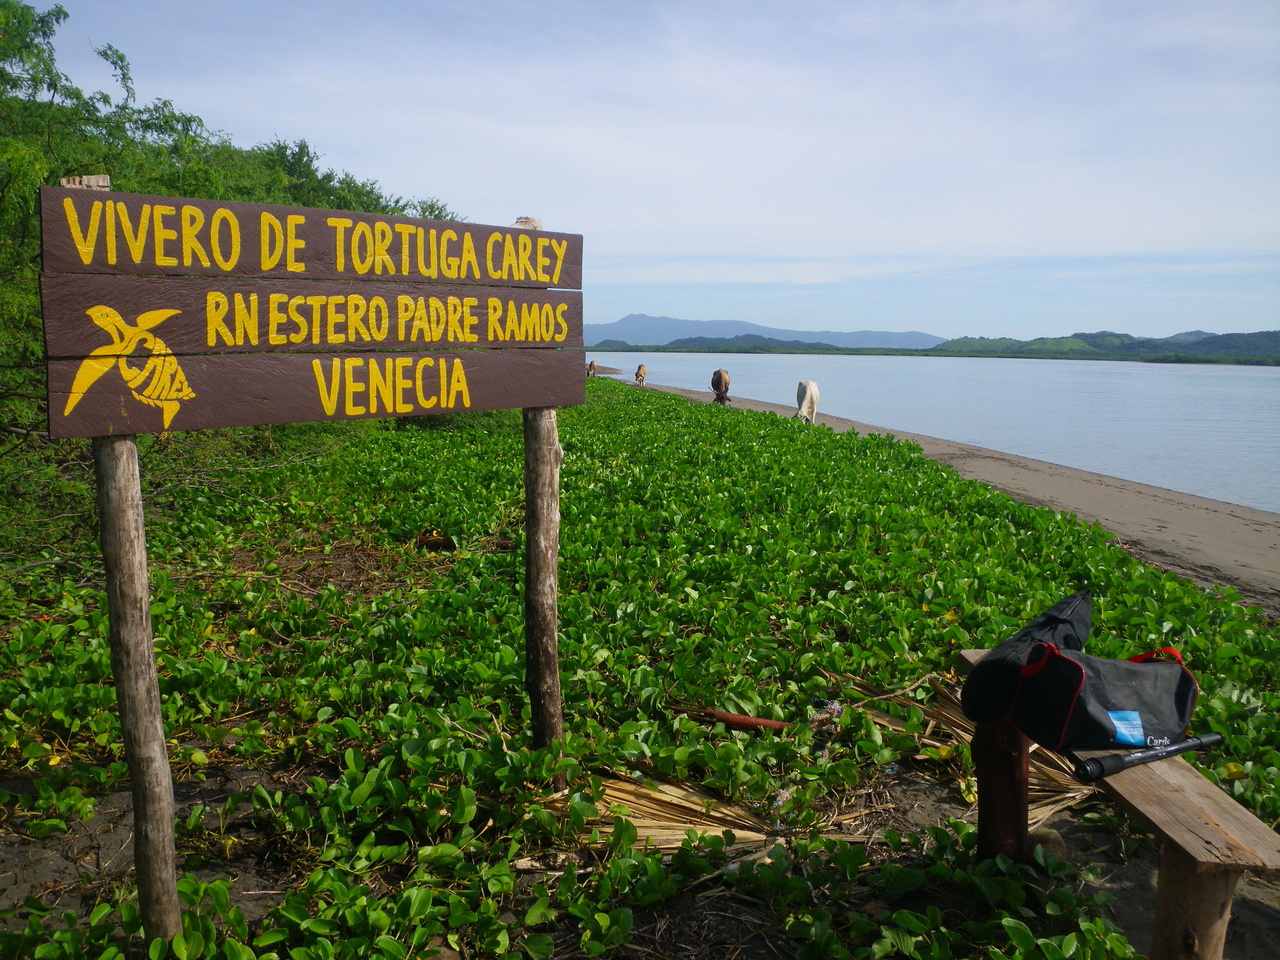 Shoreline near a hawksbill nursery for protecting eggs in Estero Padre Ramos, Nicaragua – notice the mangrove-lined shores in the background.Photo: JA Seminoff